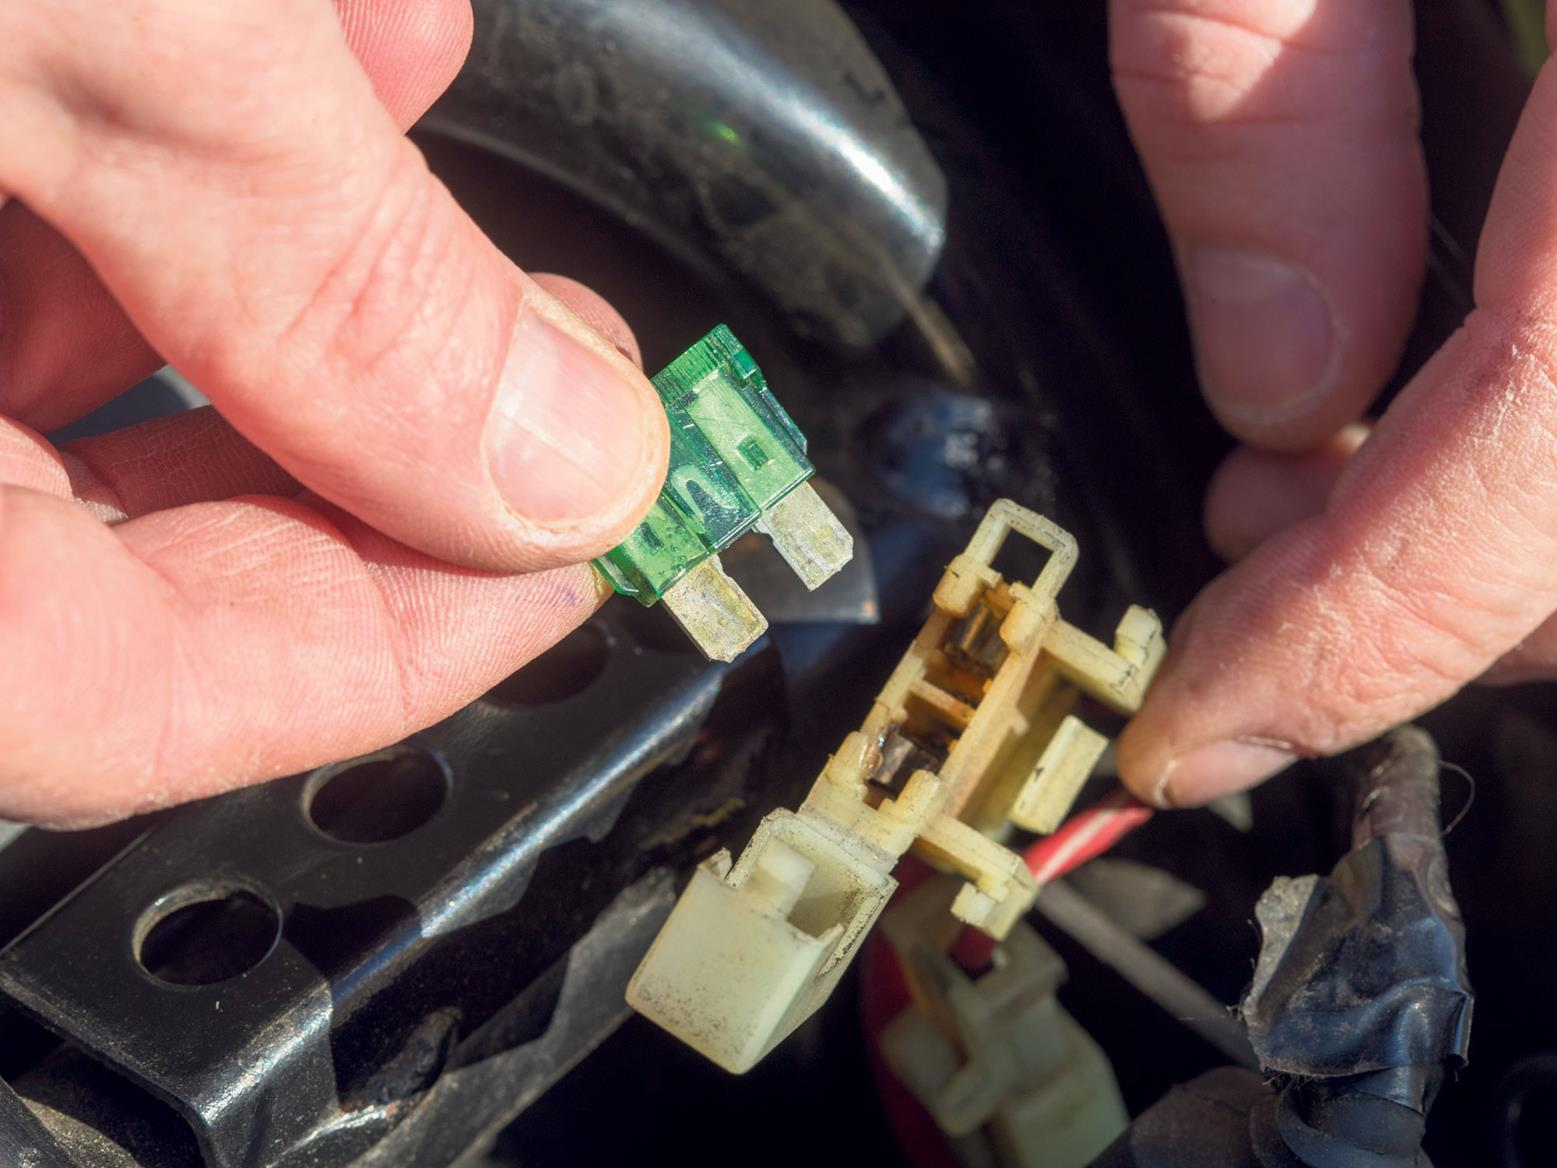 Inspect the bike's fuses